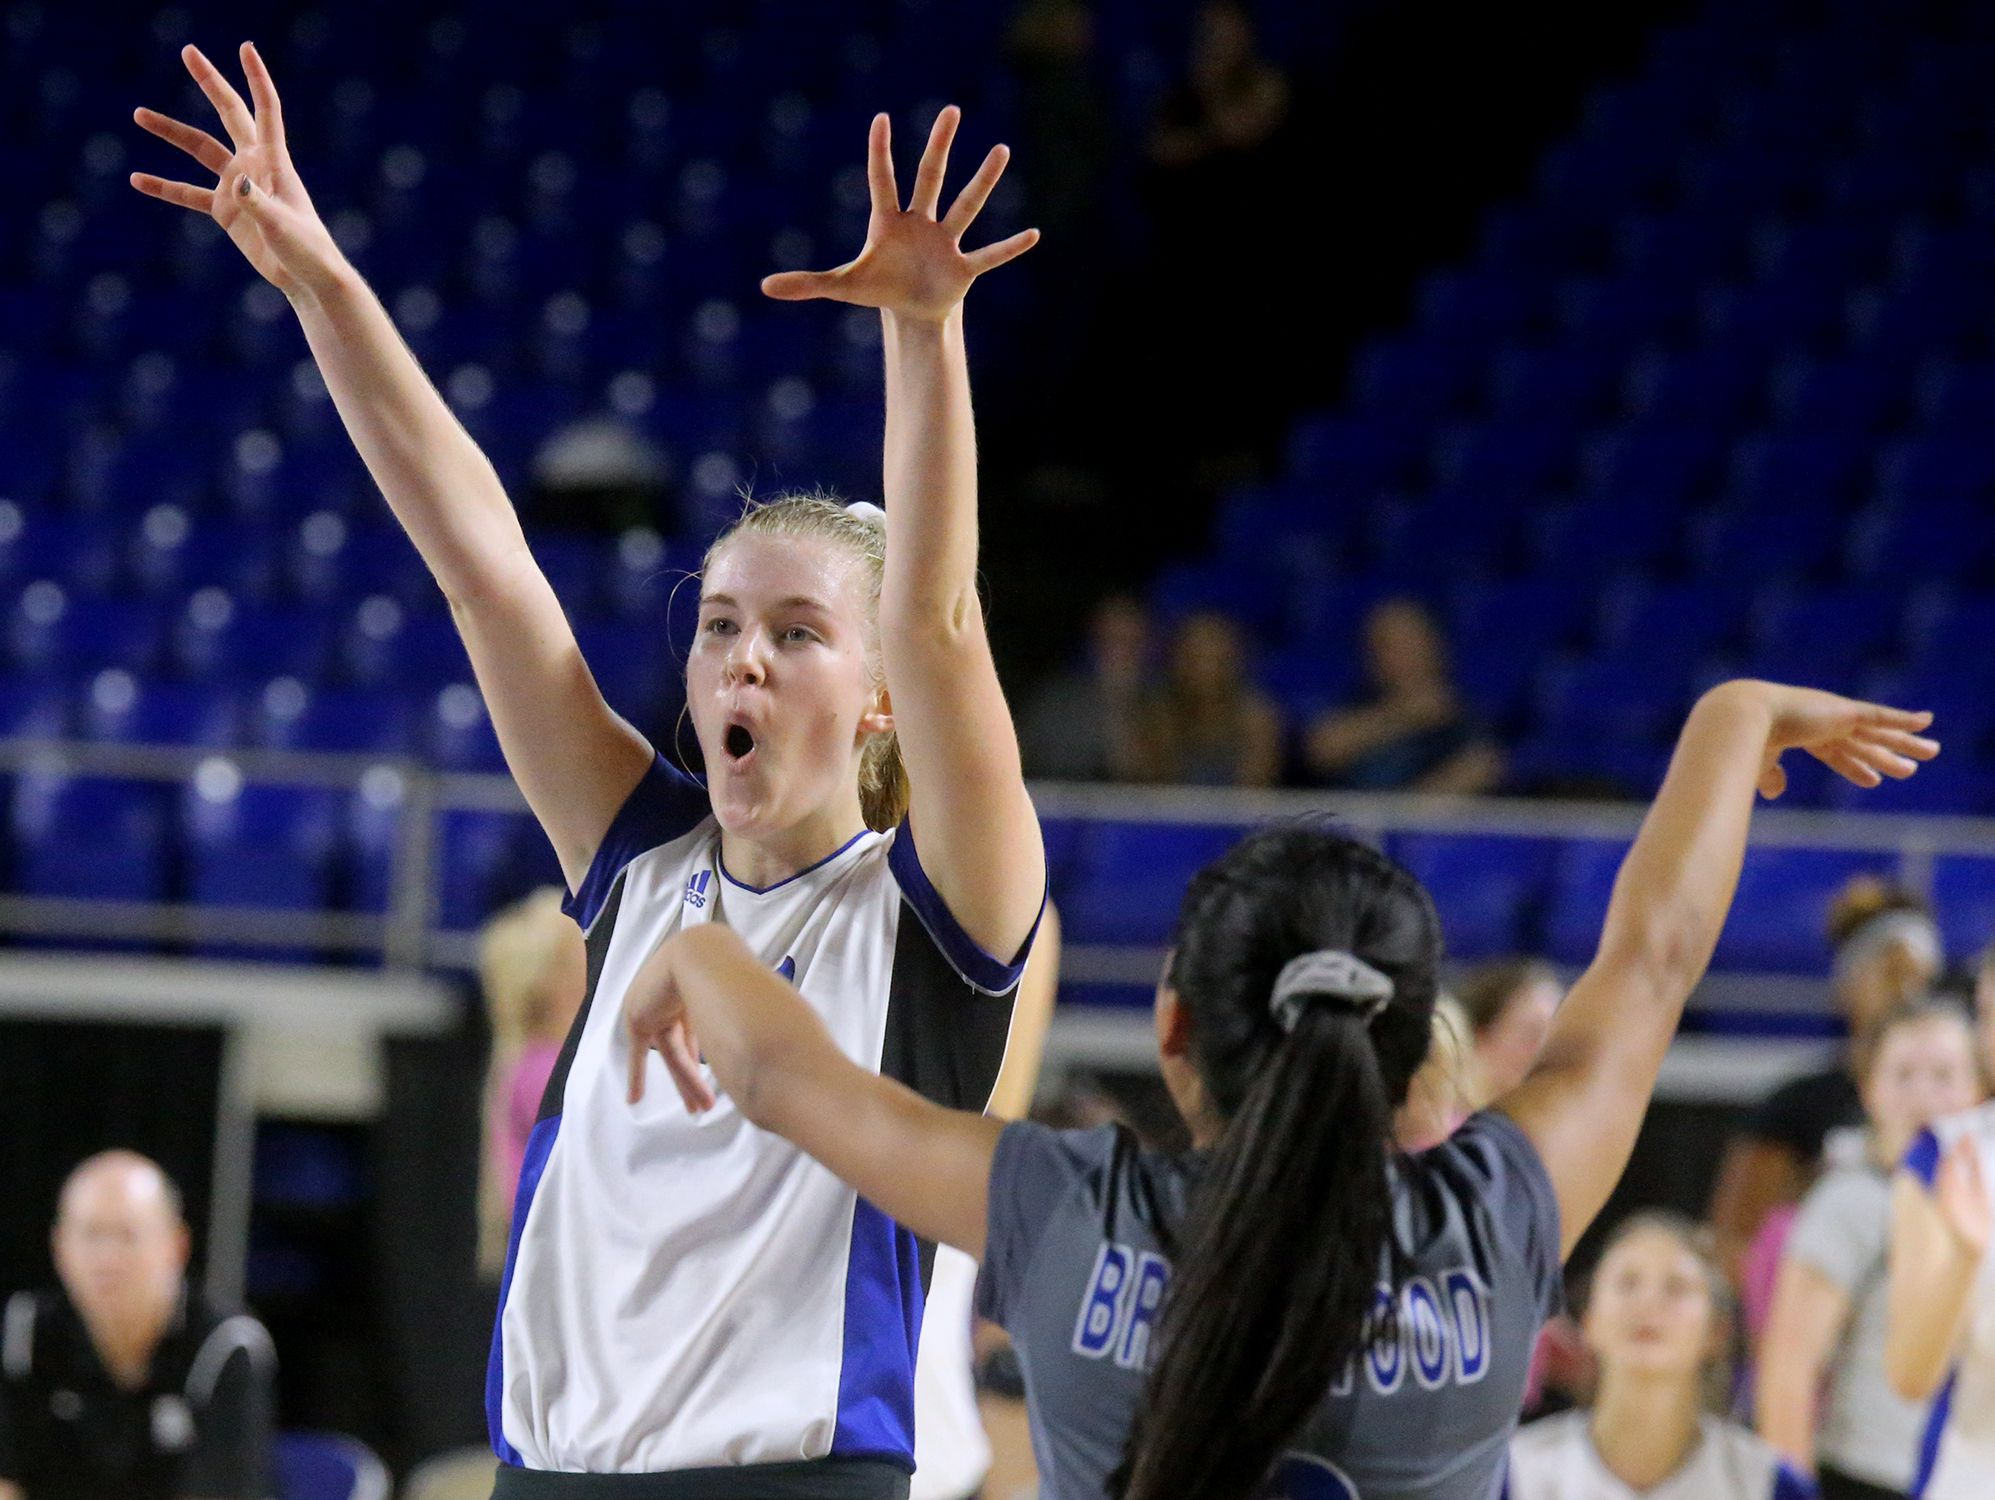 Brentwood's Garrett Joiner (20) and Andrea Aceveda (6) celebrate during the game against Farragut in the TSSAA Class AAA State Girl's Volleyball Tournament on Wednesday, Oct. 19, 2016.